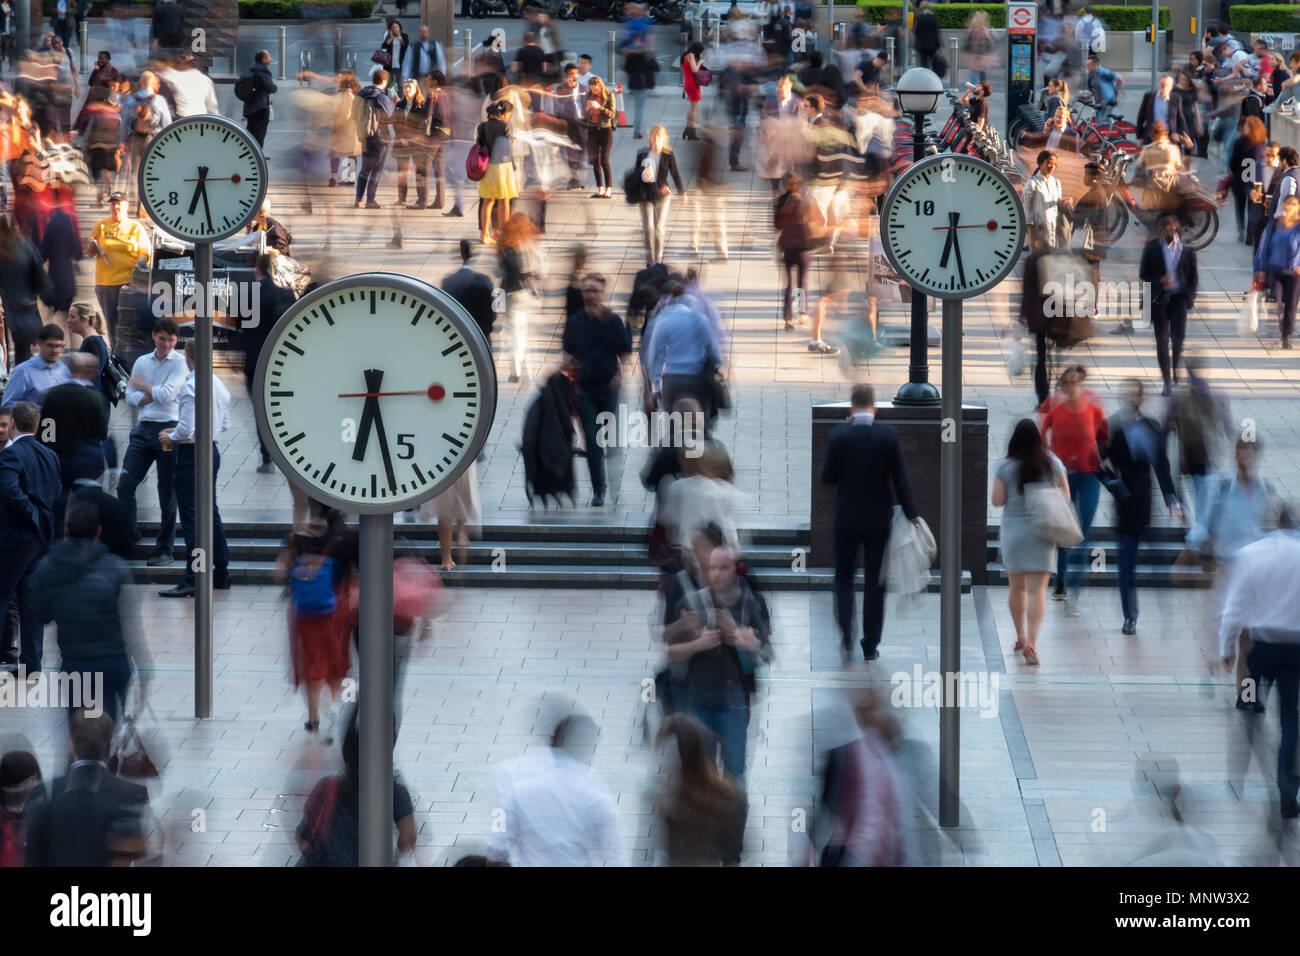 Time and Motion, Six Public Clocks, Canary Wharf, London, England, UK - Stock Image